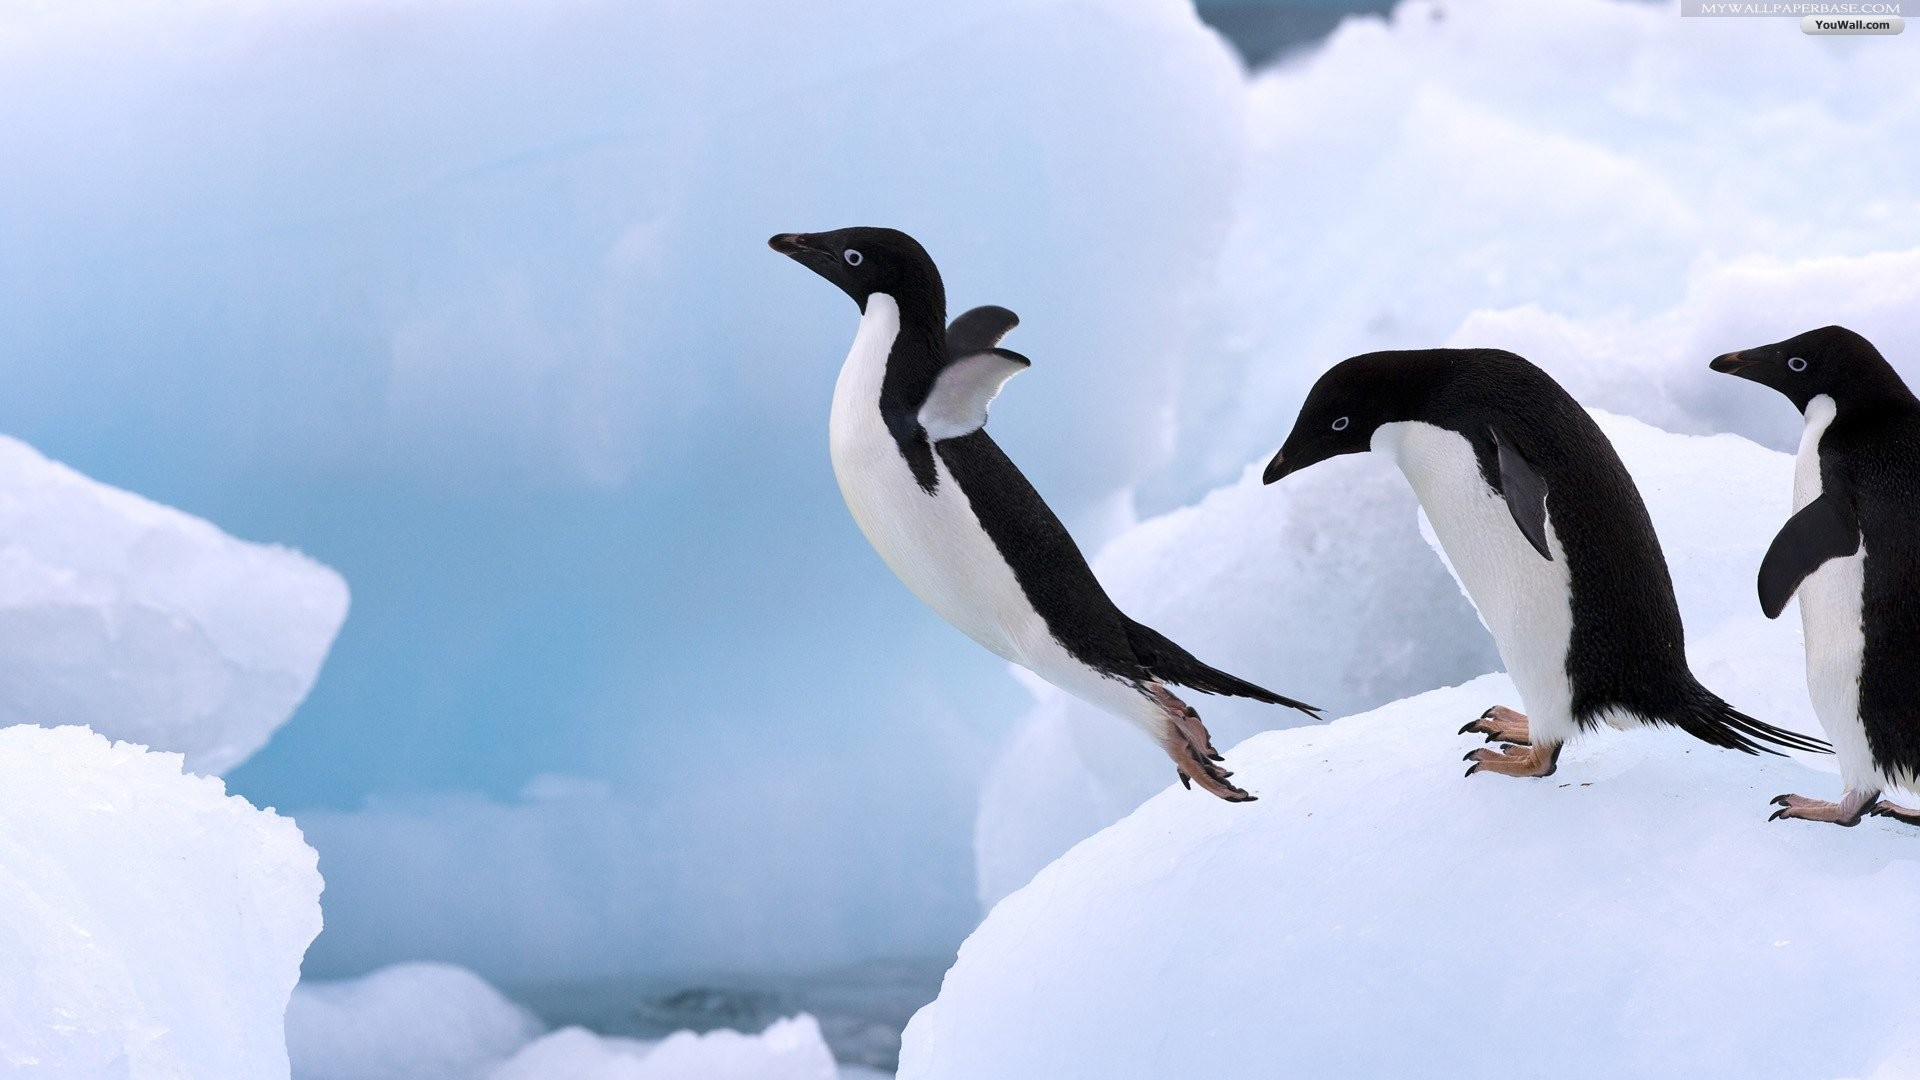 penguin wallpaper ·① download free cool high resolution backgrounds